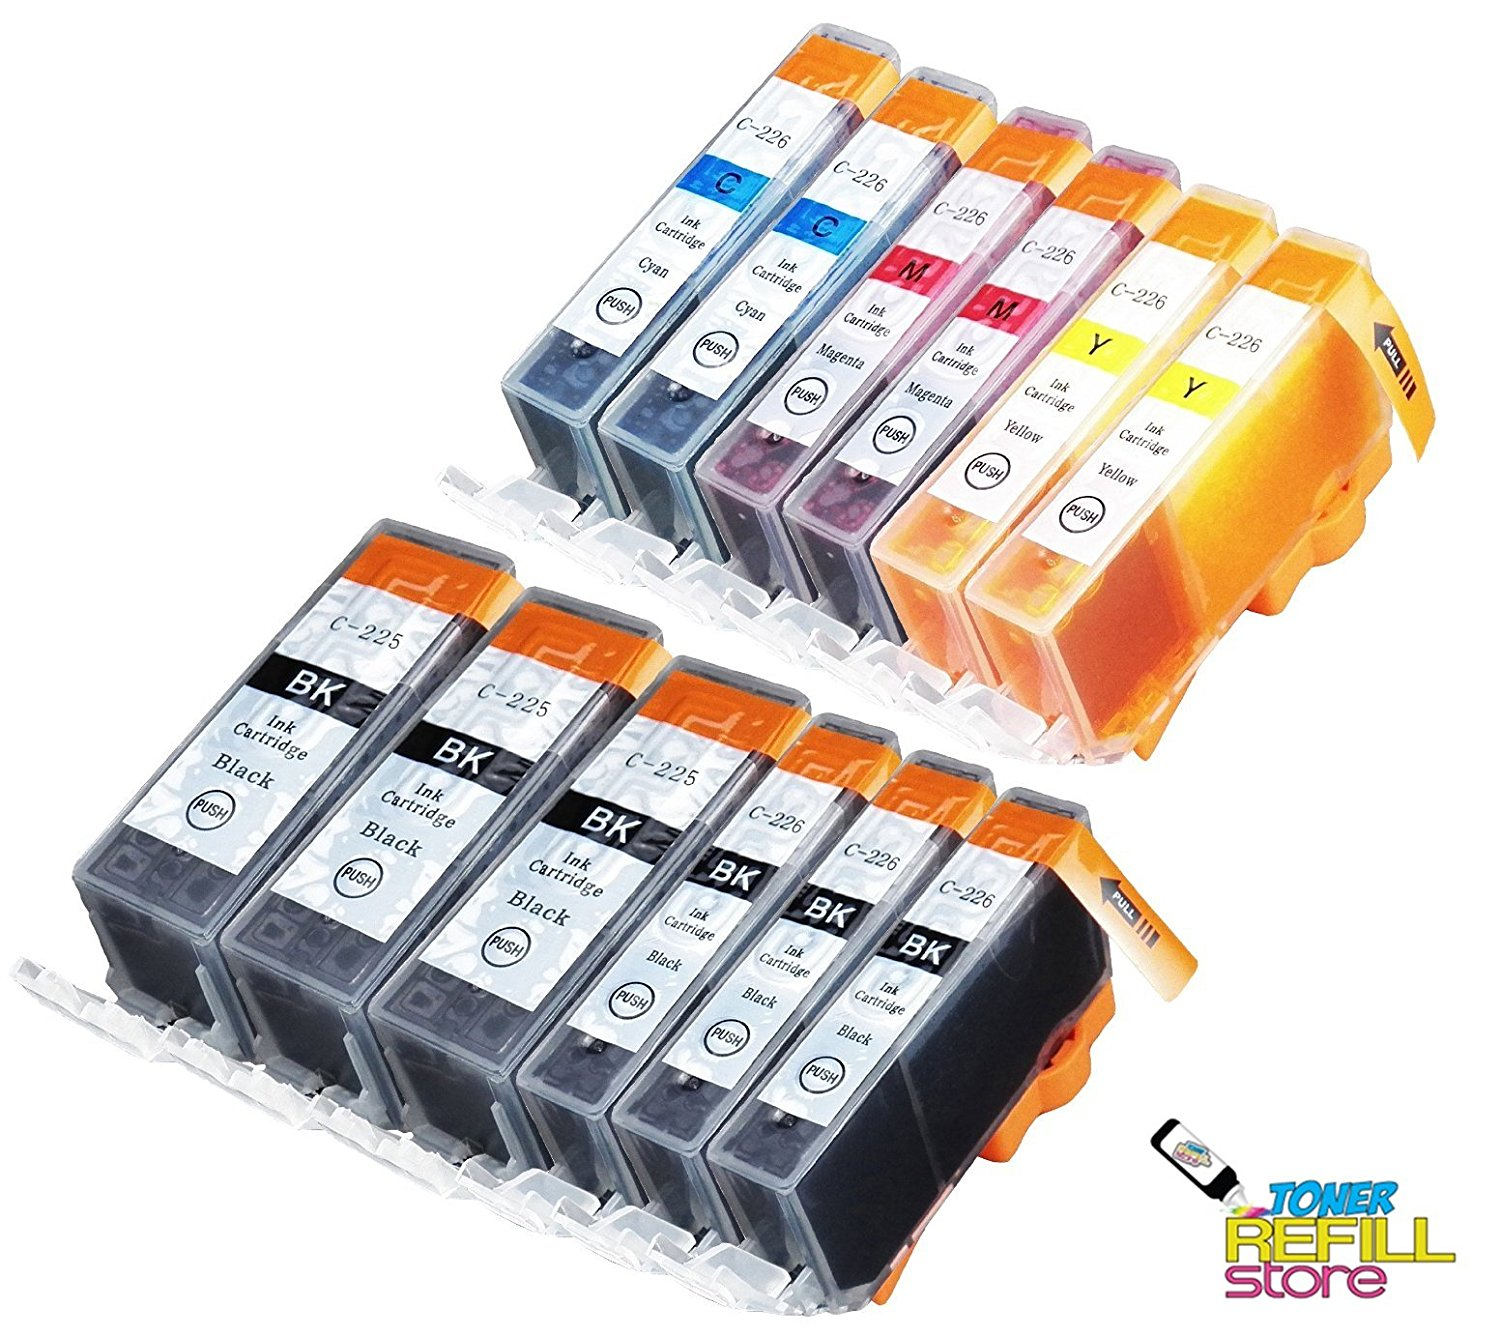 Toner Refill Store 12 Pack Compatible Canon PGI-225 / CLI-226 (3 Big Black, 3 Small Black, 2C, 2M, 2Y). Page Yield: 350 pages at 5% coverage for PGI-225BK and 510 pages at 5% coverage for CLI-225 colors. Works in the following printer models: PIXMA iP4820, PIXMA iP4920, PIXMA iX6520, PIXMA MG5120,